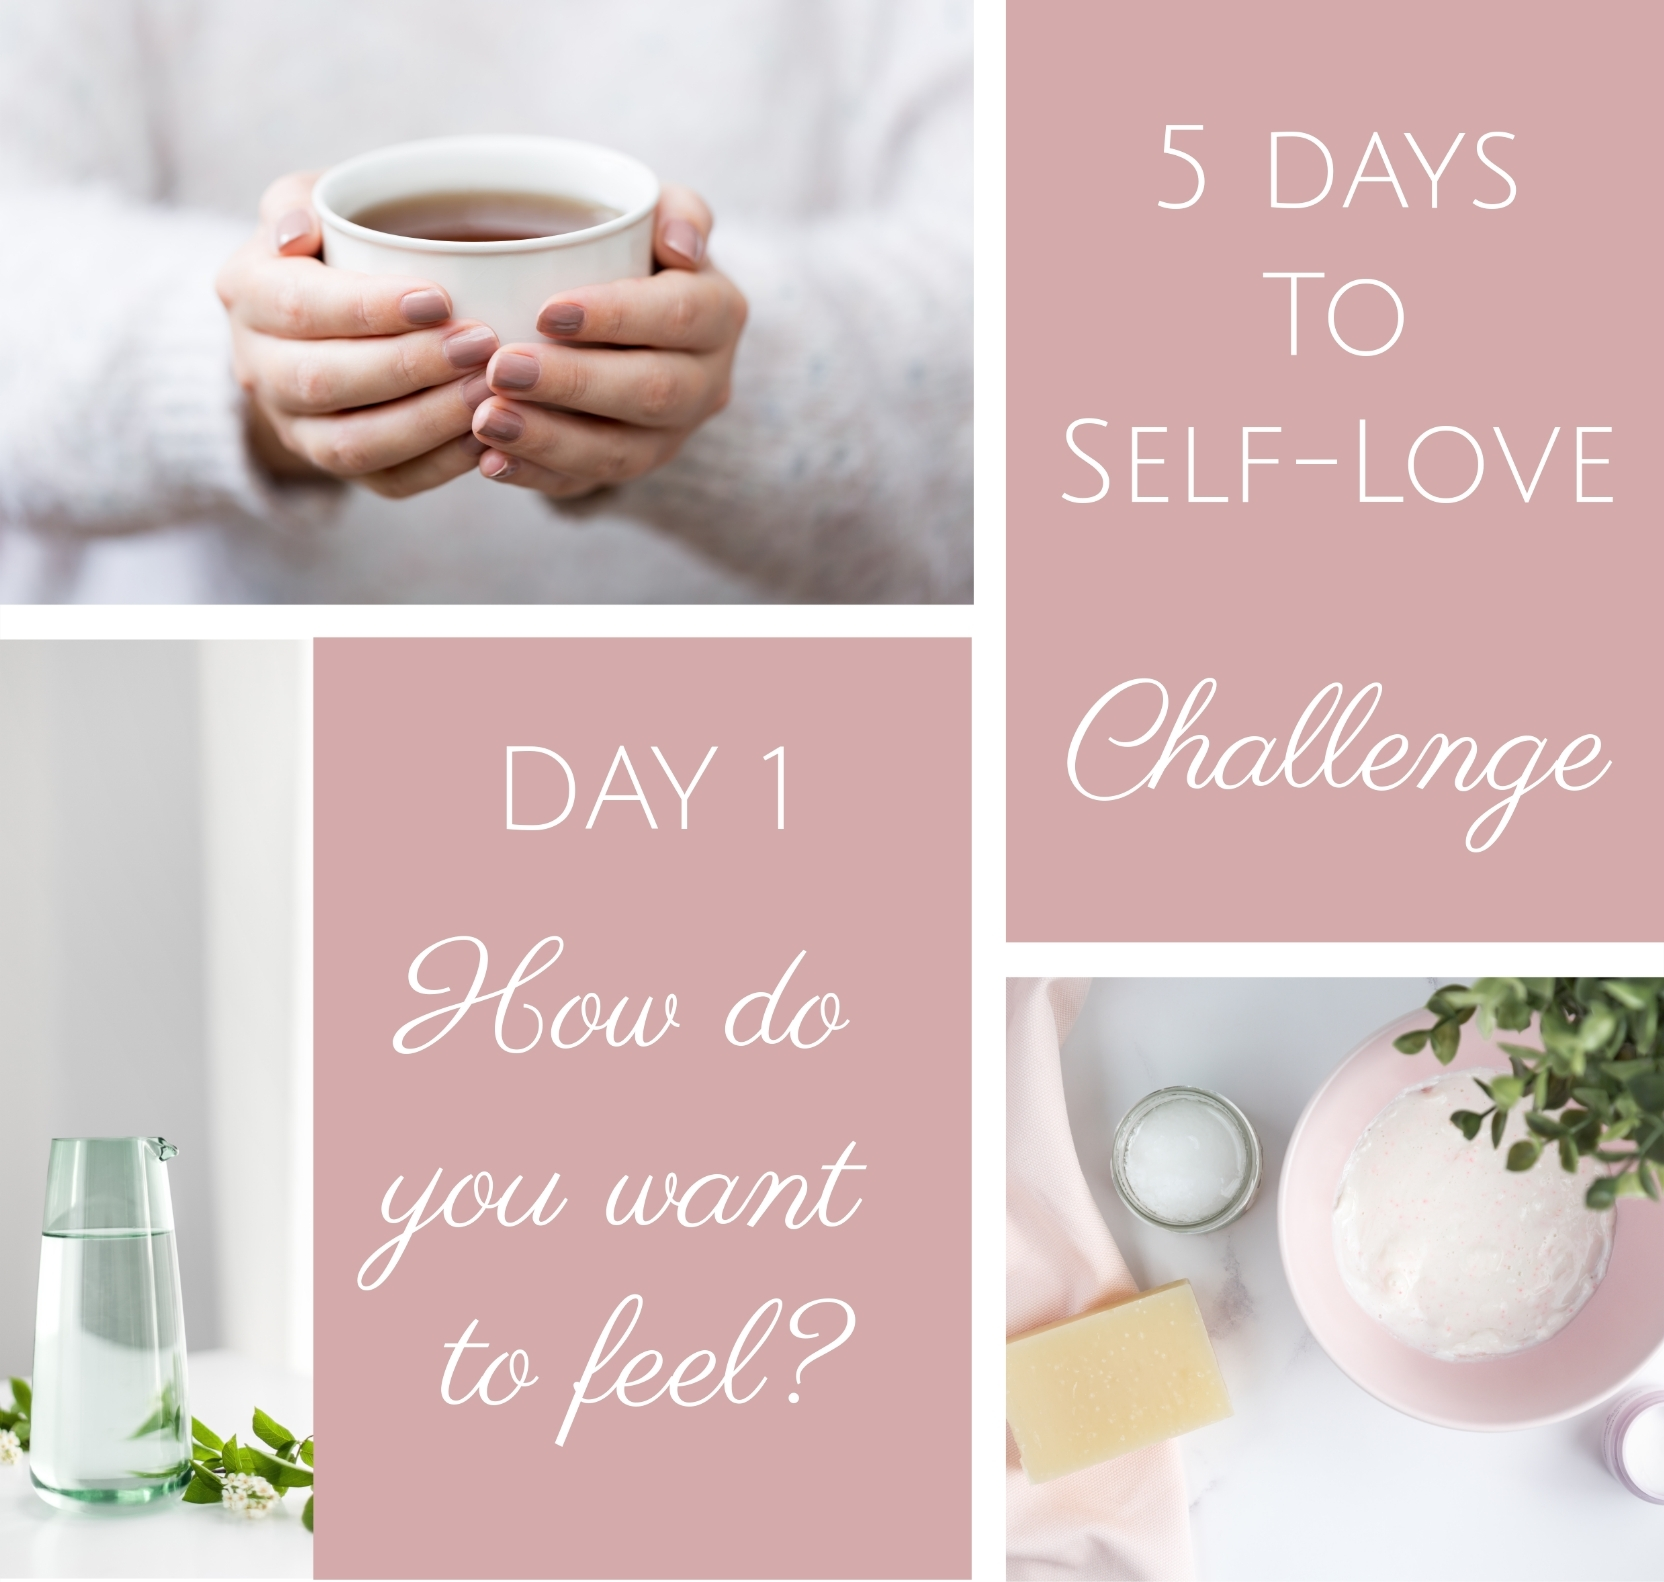 5 days to selflove - feelings